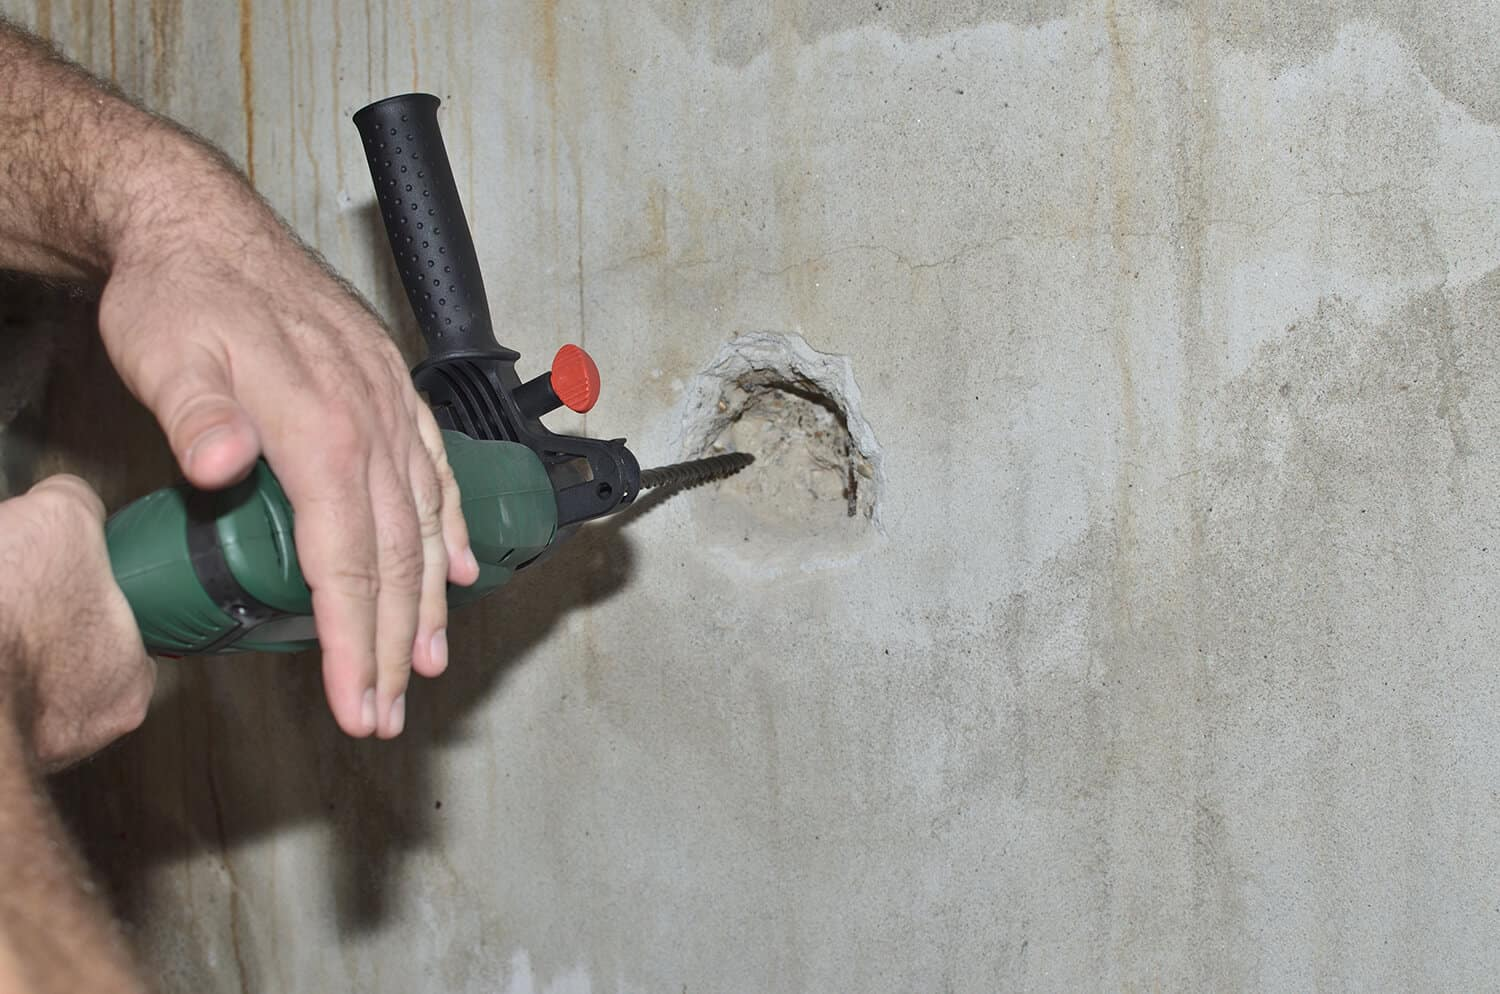 When you need to drill